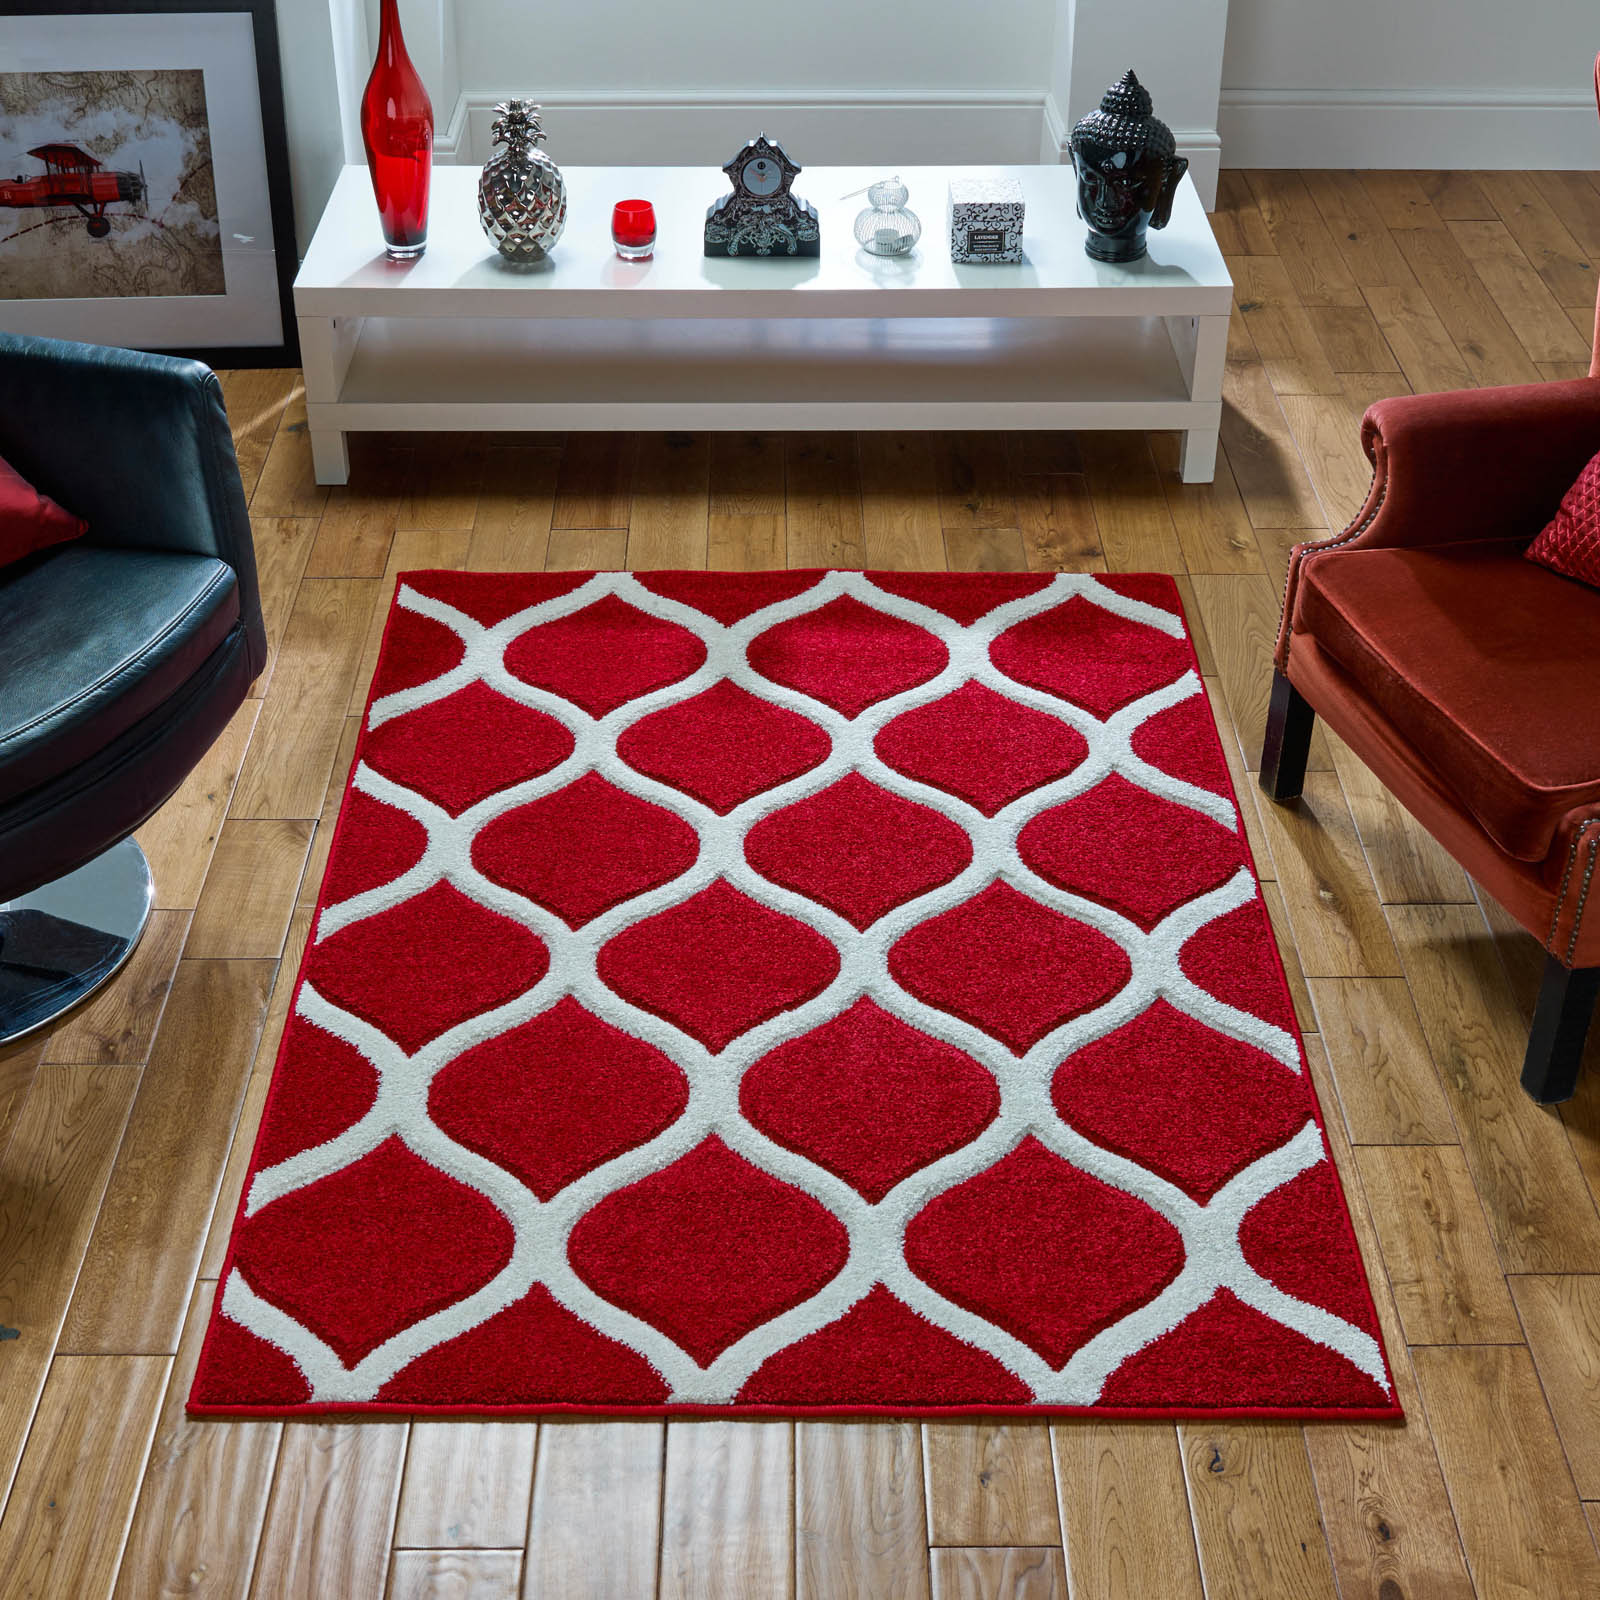 Viva Rugs 1095 R in Red and Ivory